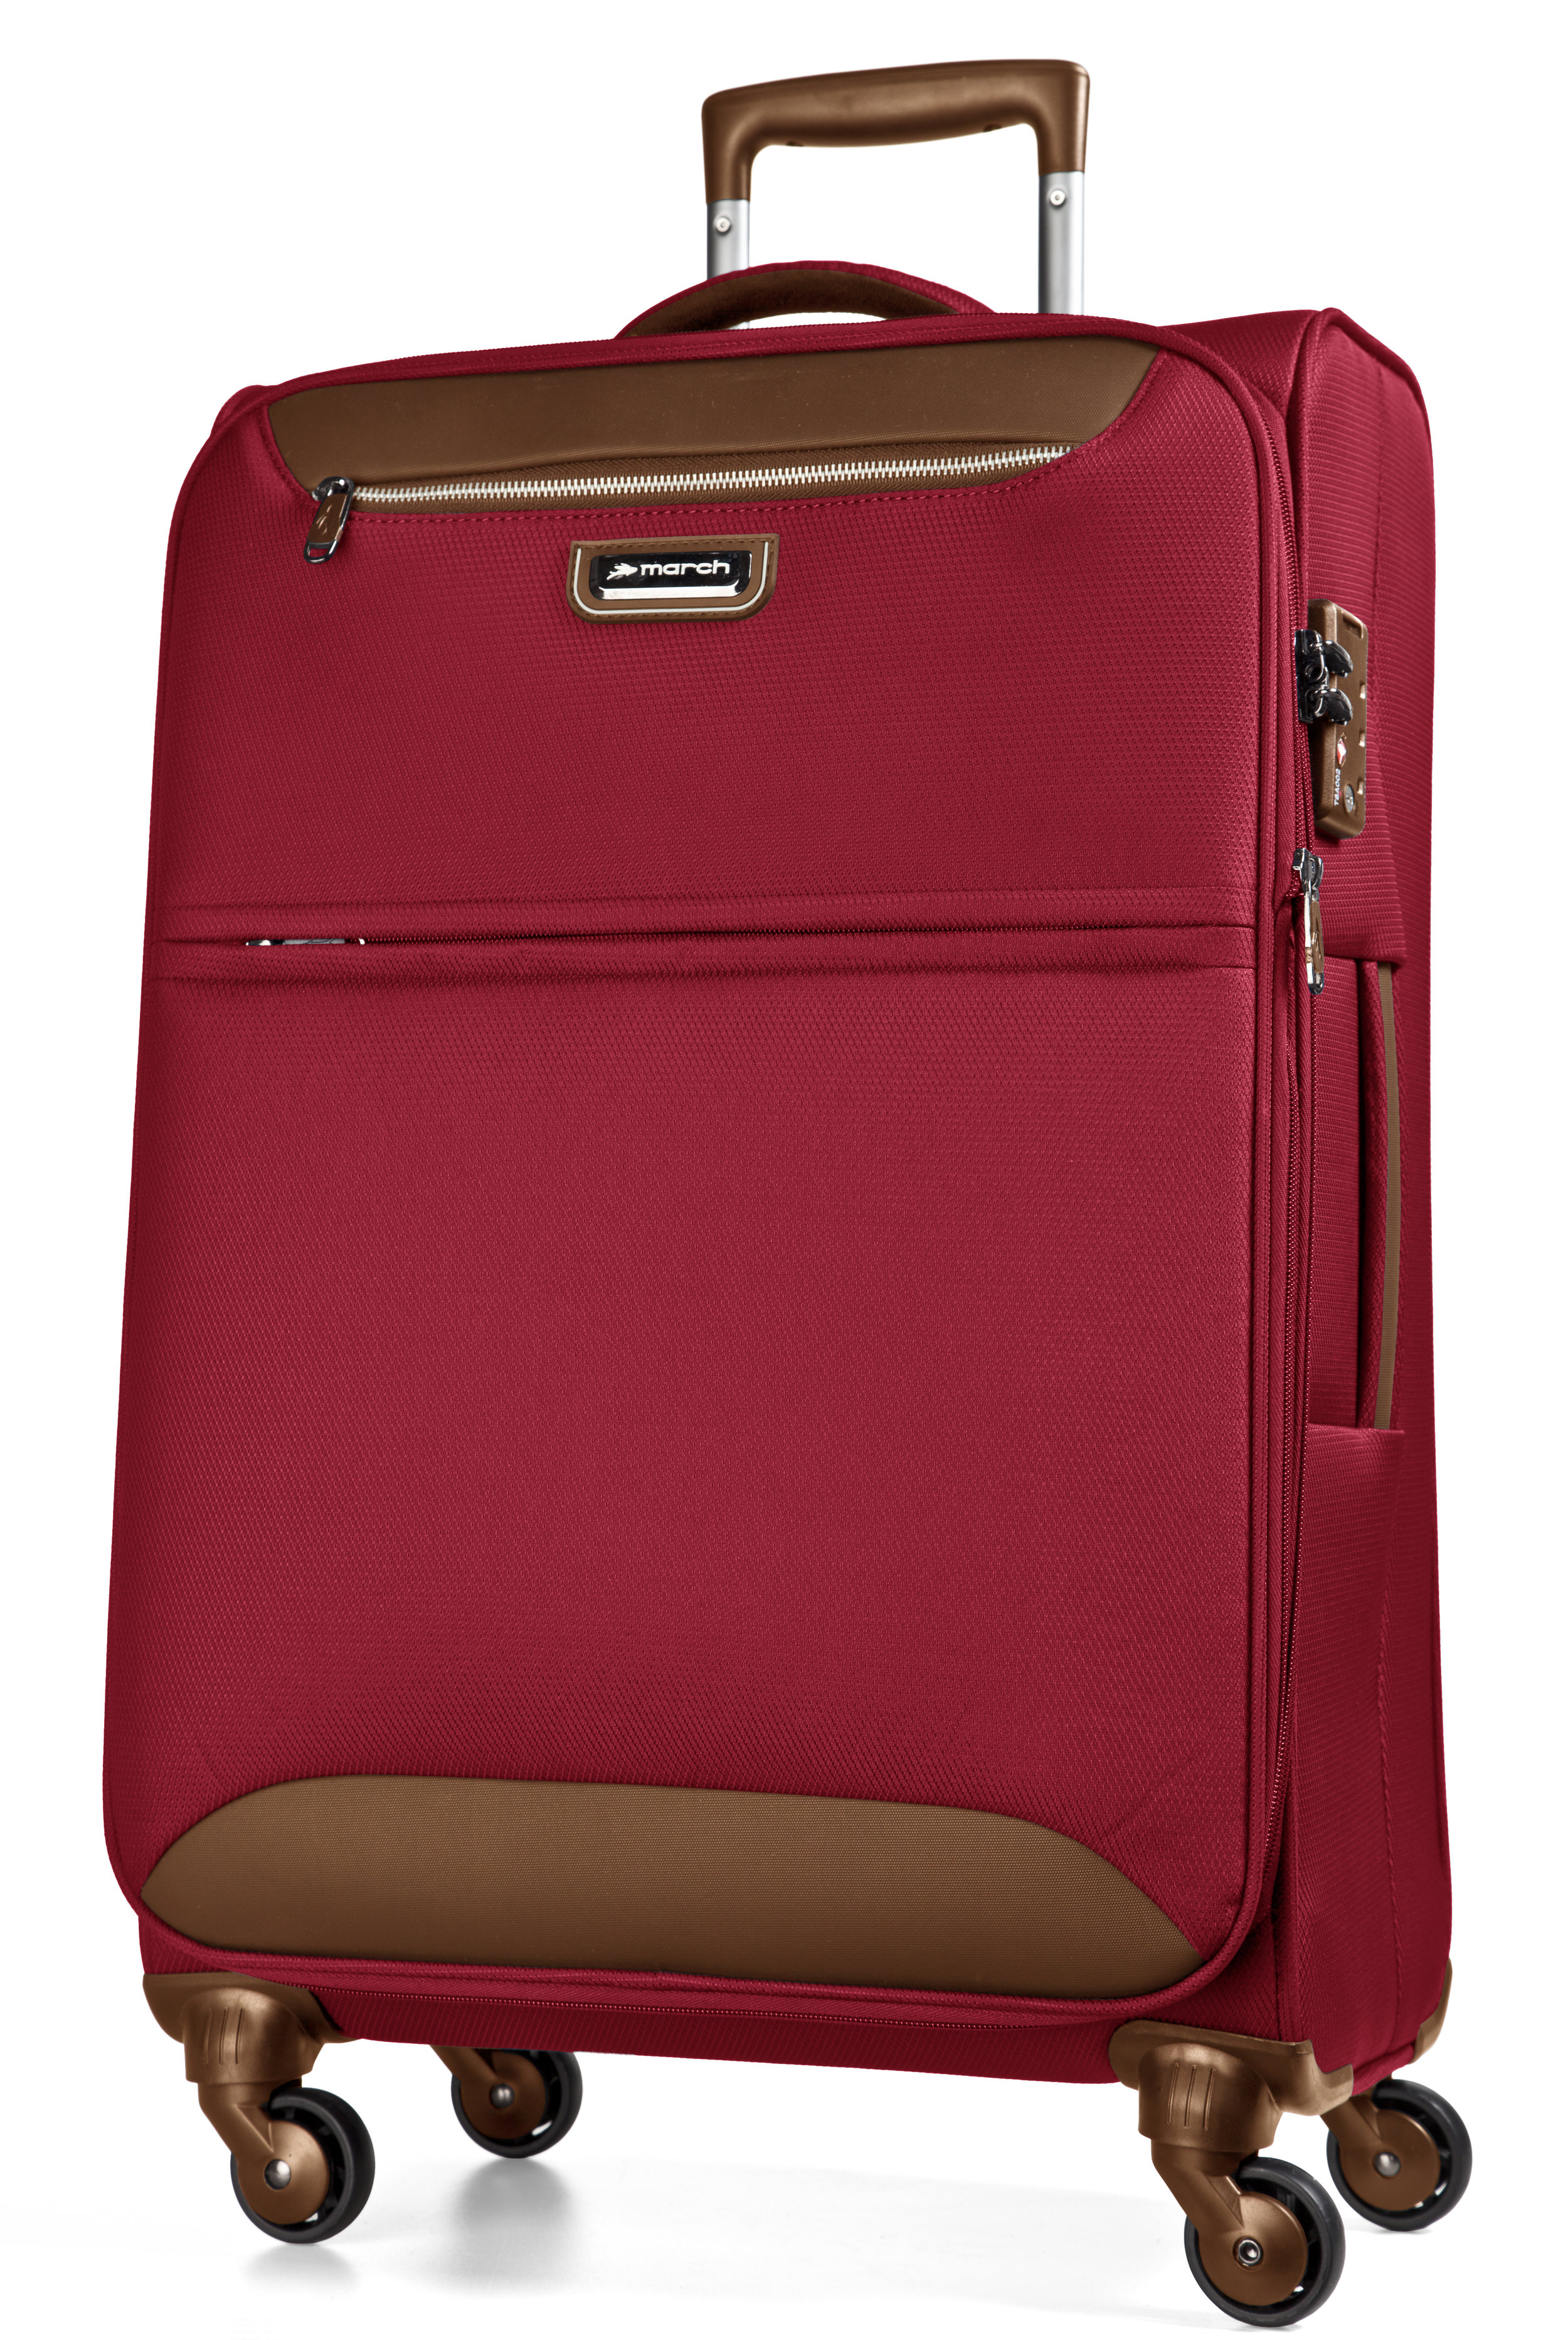 FLYBIRD red-brown.jpg